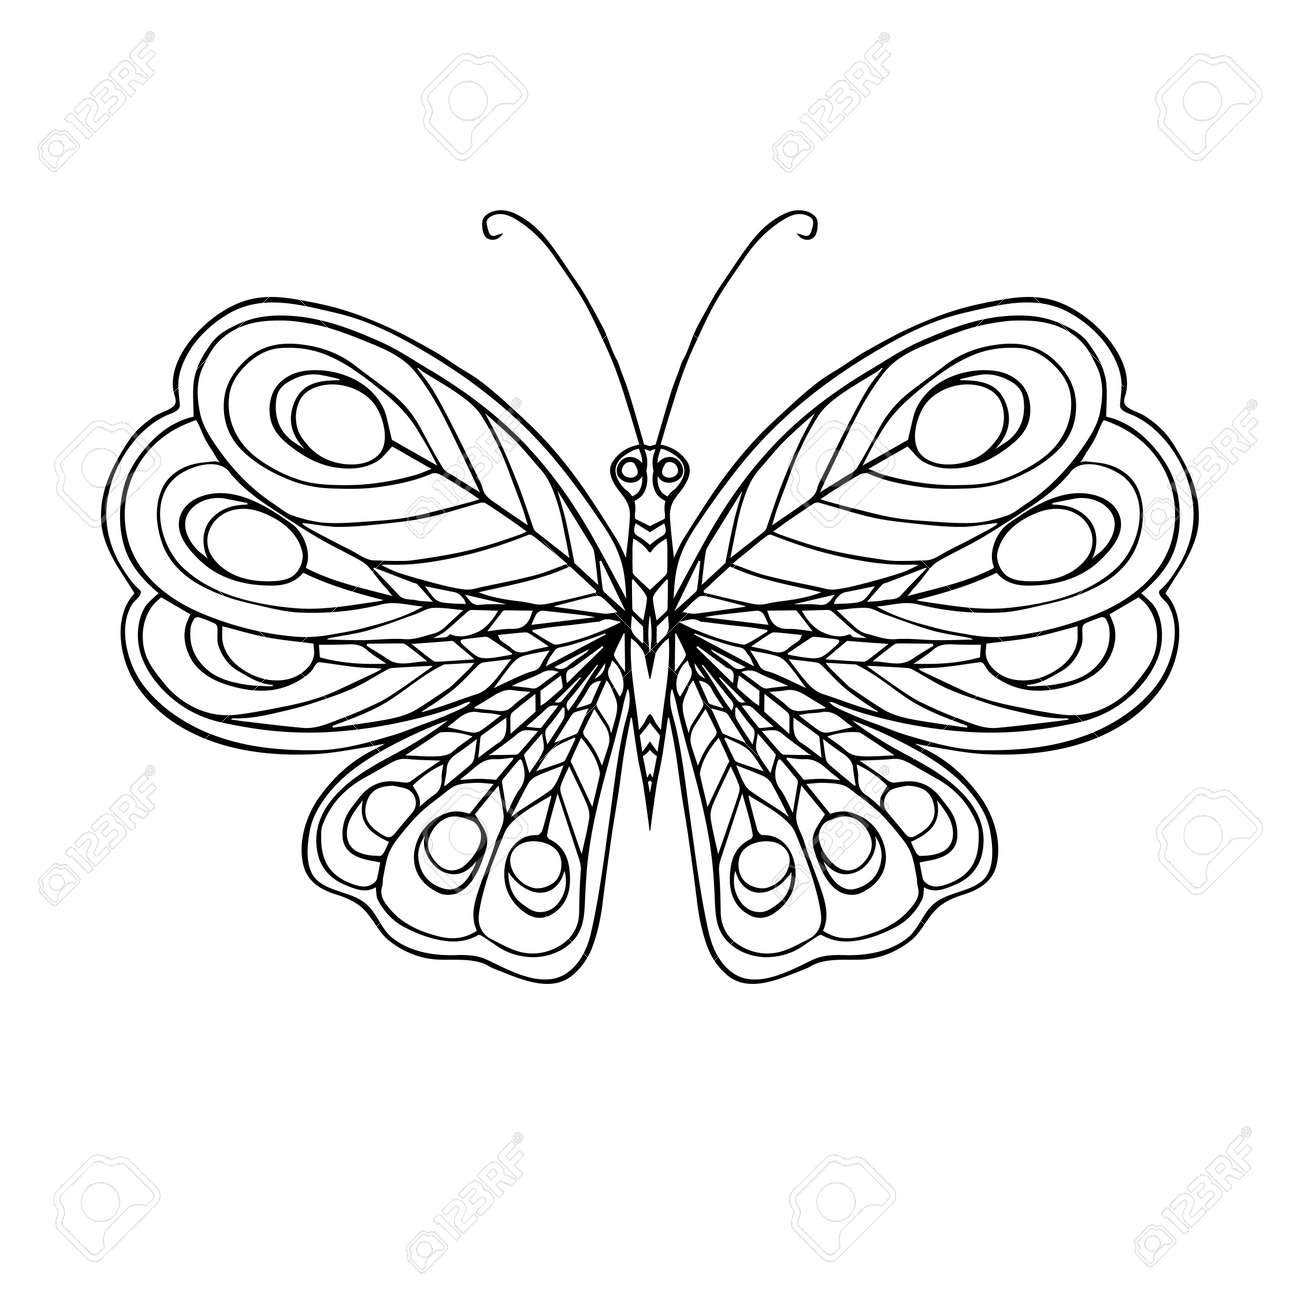 Decorative Butterfly Coloring Book For Adult And Older Children